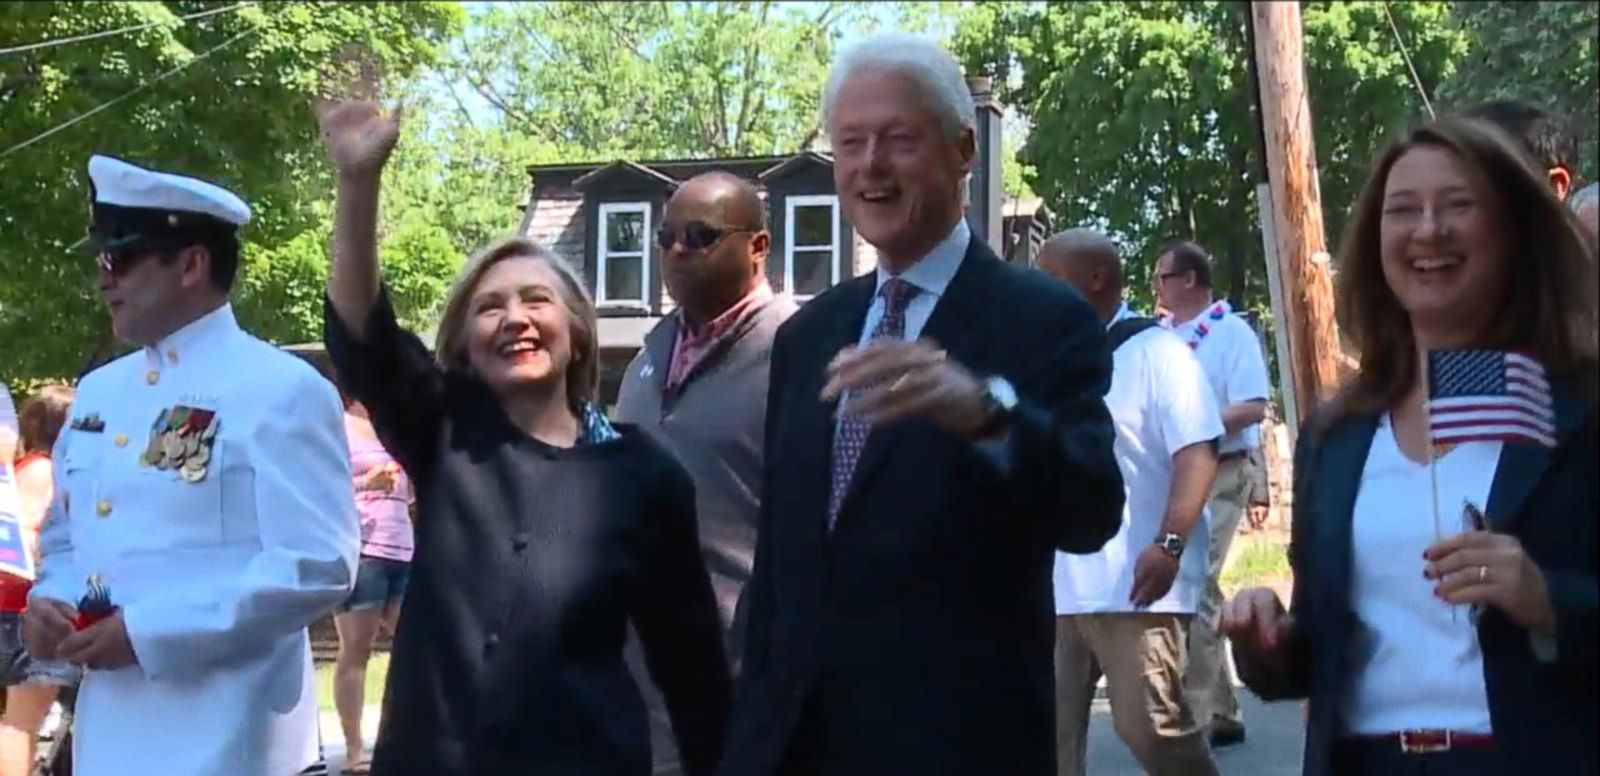 VIDEO: Presidential candidate Hillary Clinton walked in the New Castle Memorial Day Parade in Chappaqua, N.Y., alongside her husband.